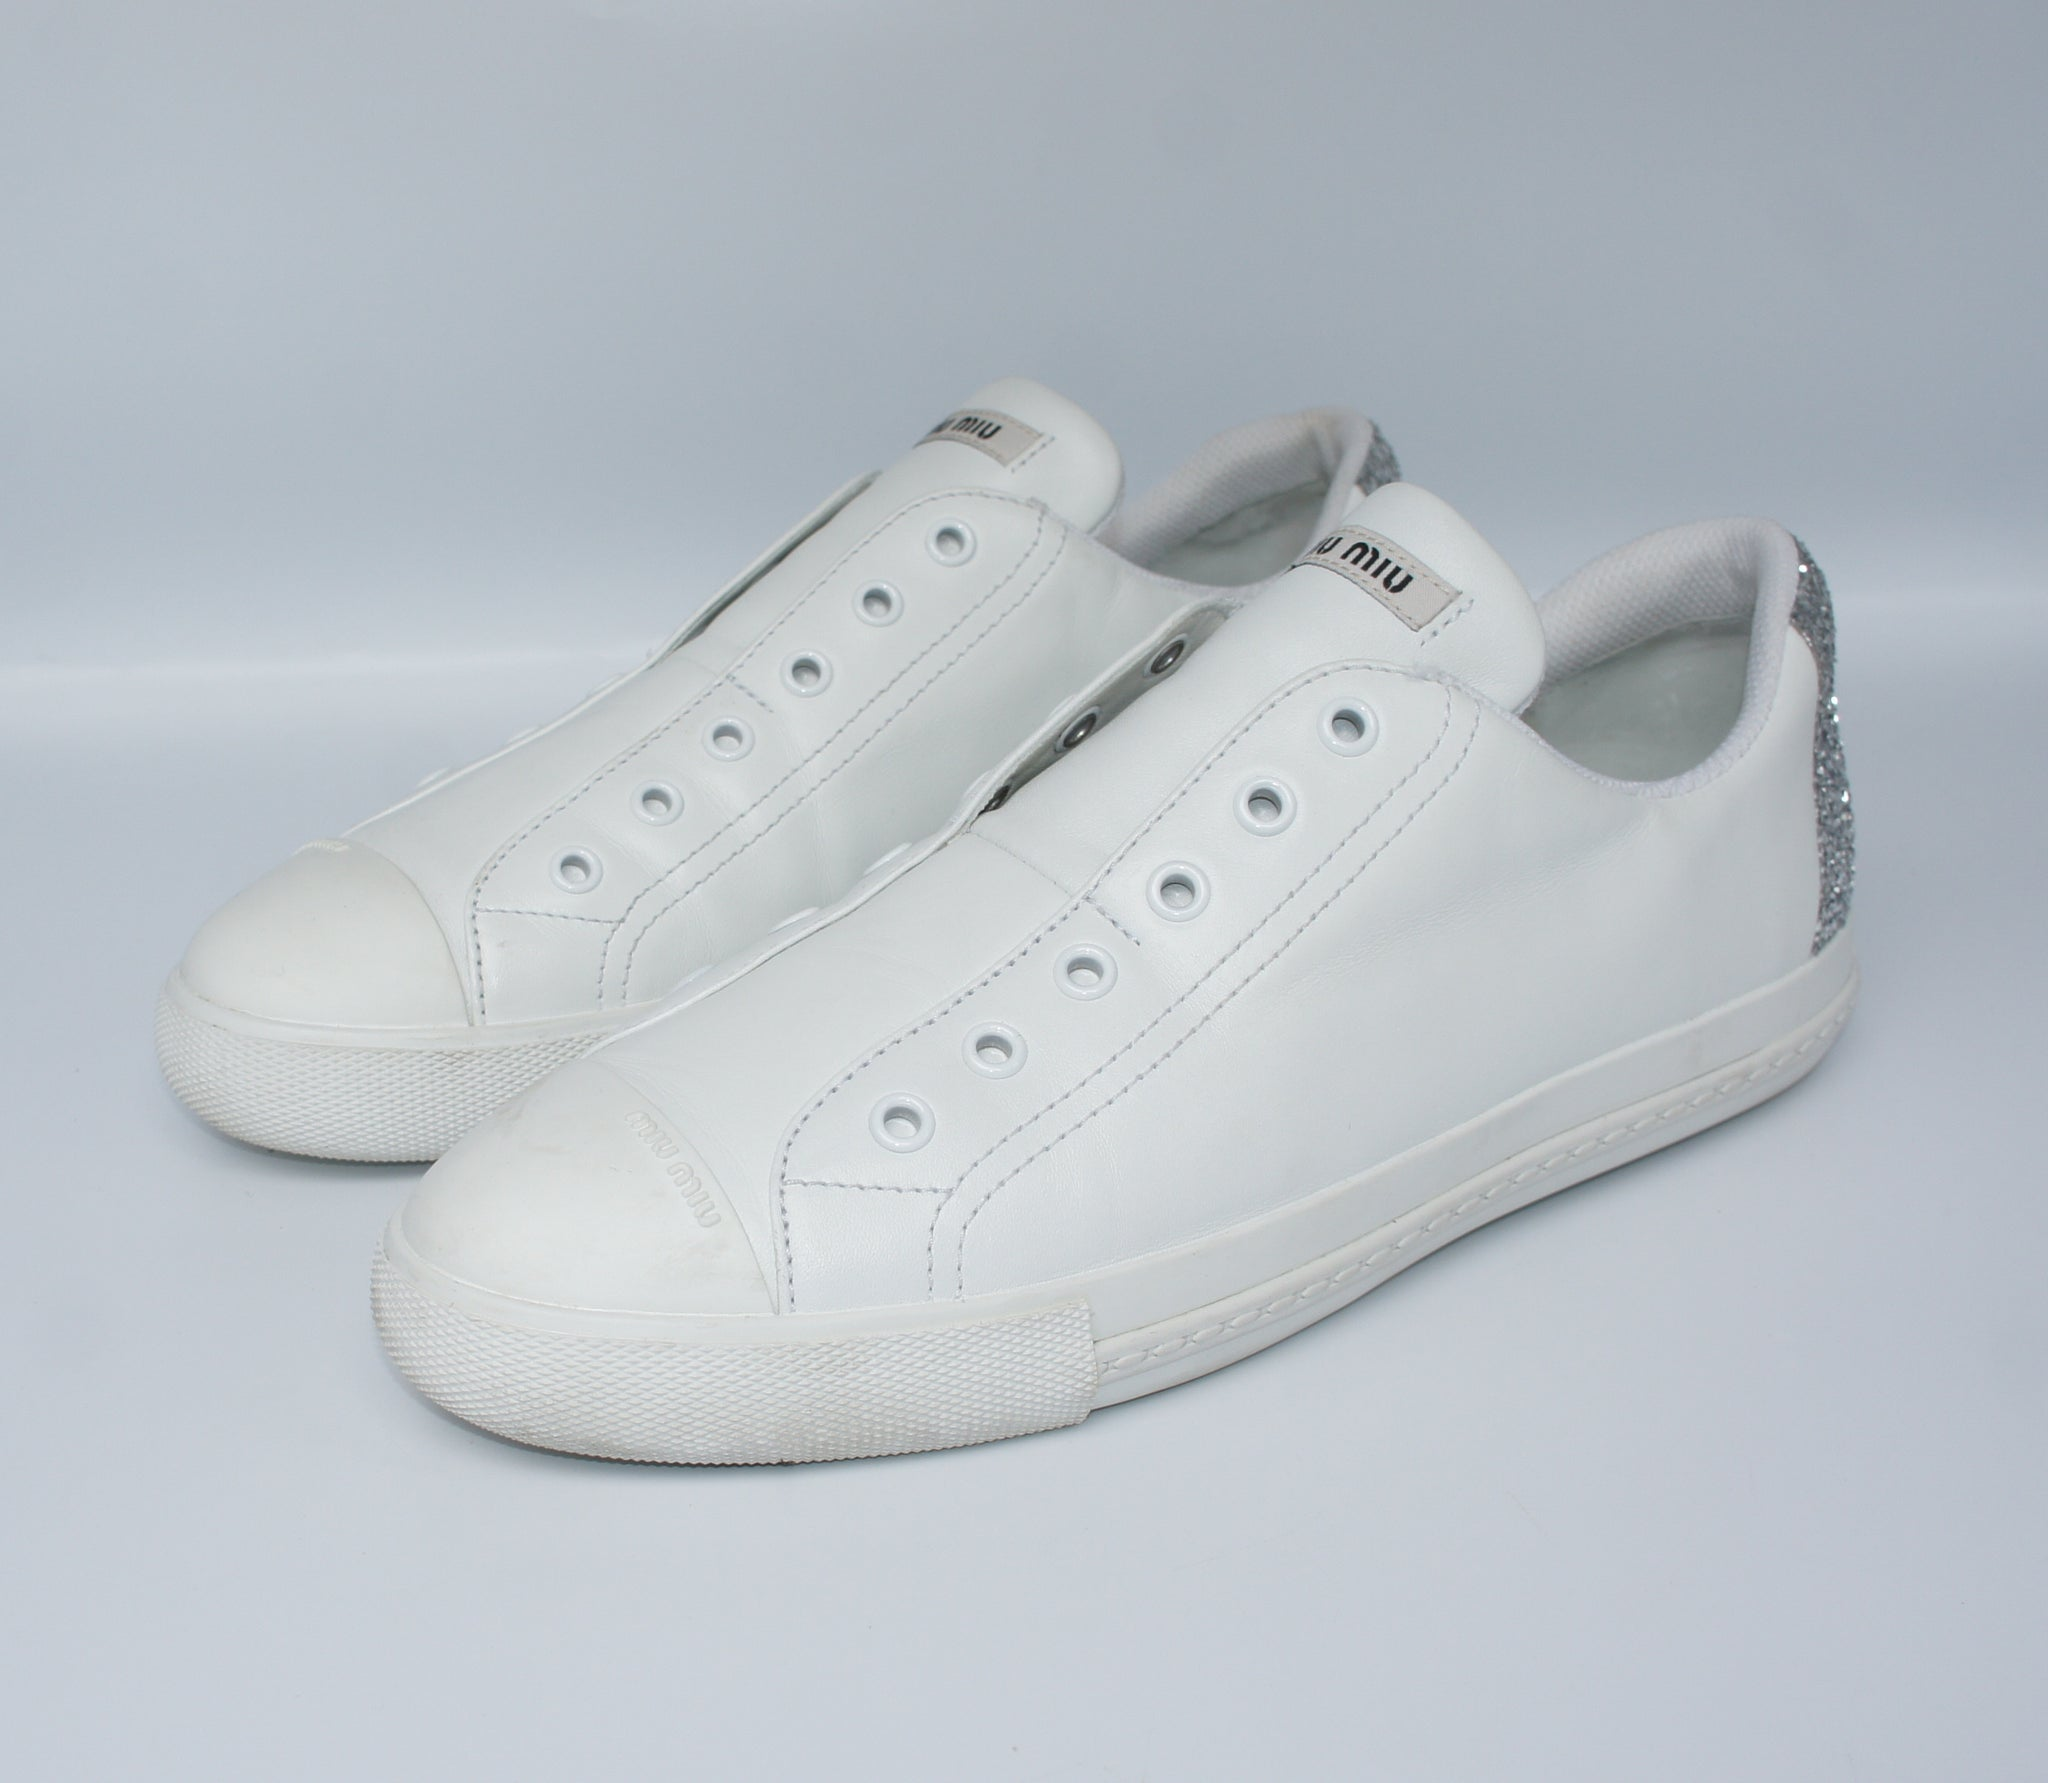 outlet store sale order online cheaper Miu Miu sneakers, 40 – Iconics Preloved Luxury